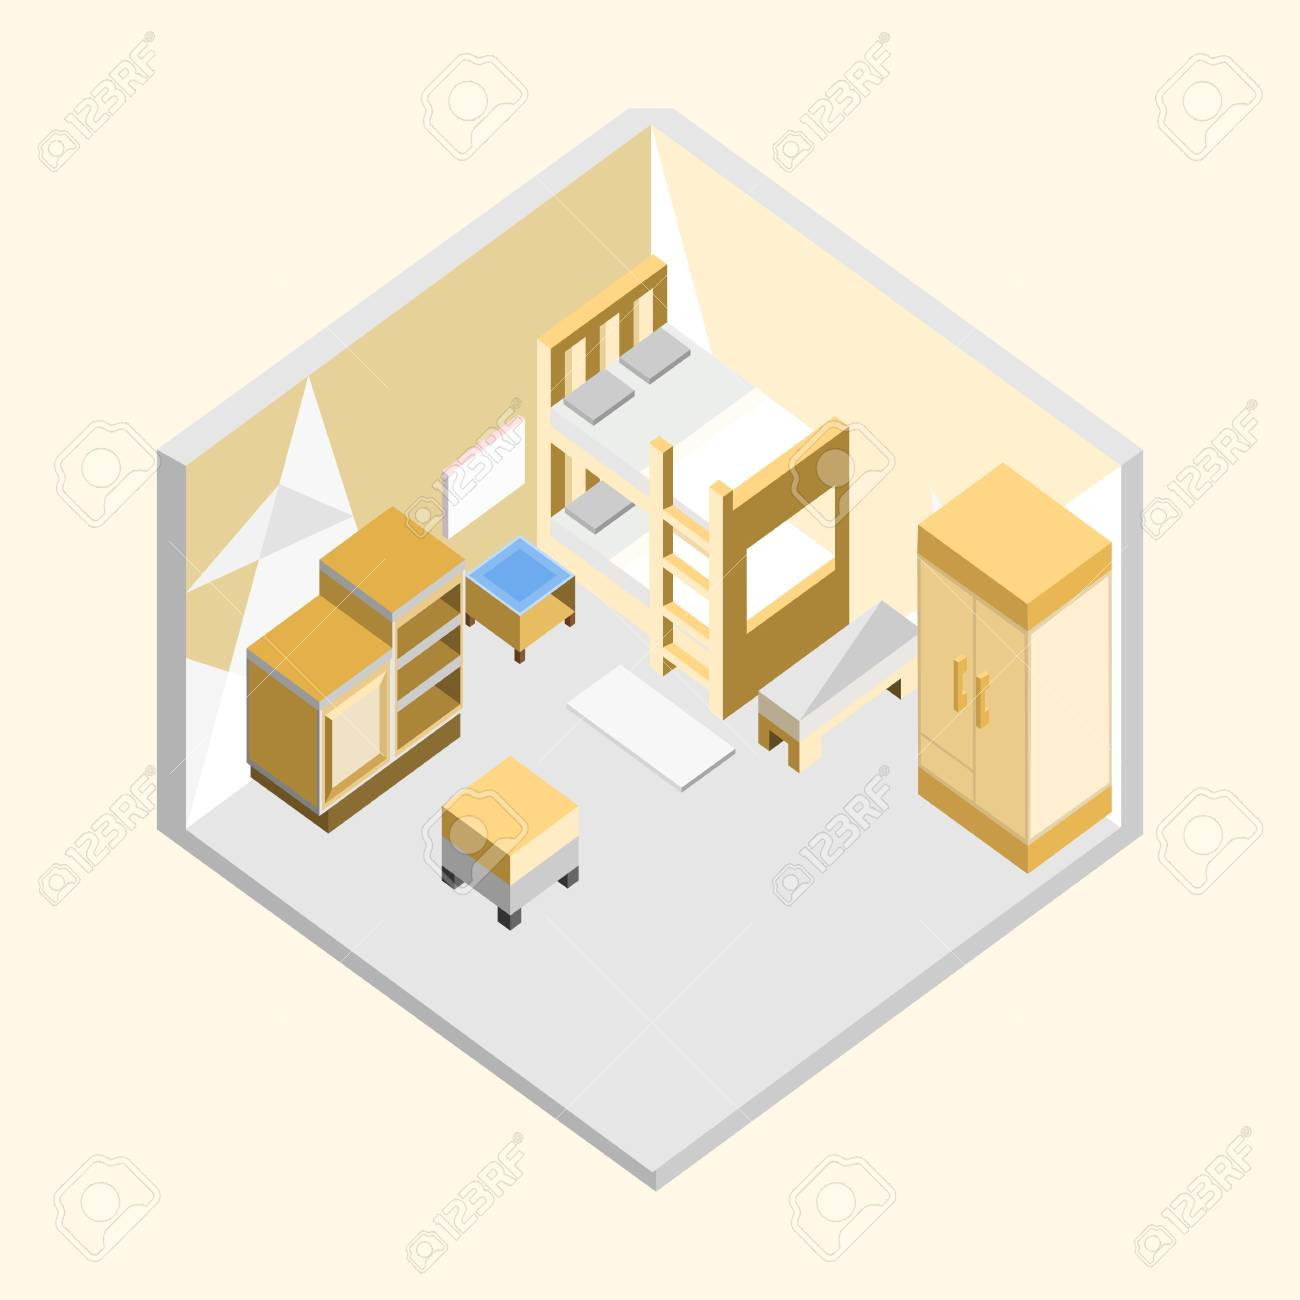 Yellow Bedroom Isometric Home Interior Vector Illustration Graphic Design  Stock Vector   97794123